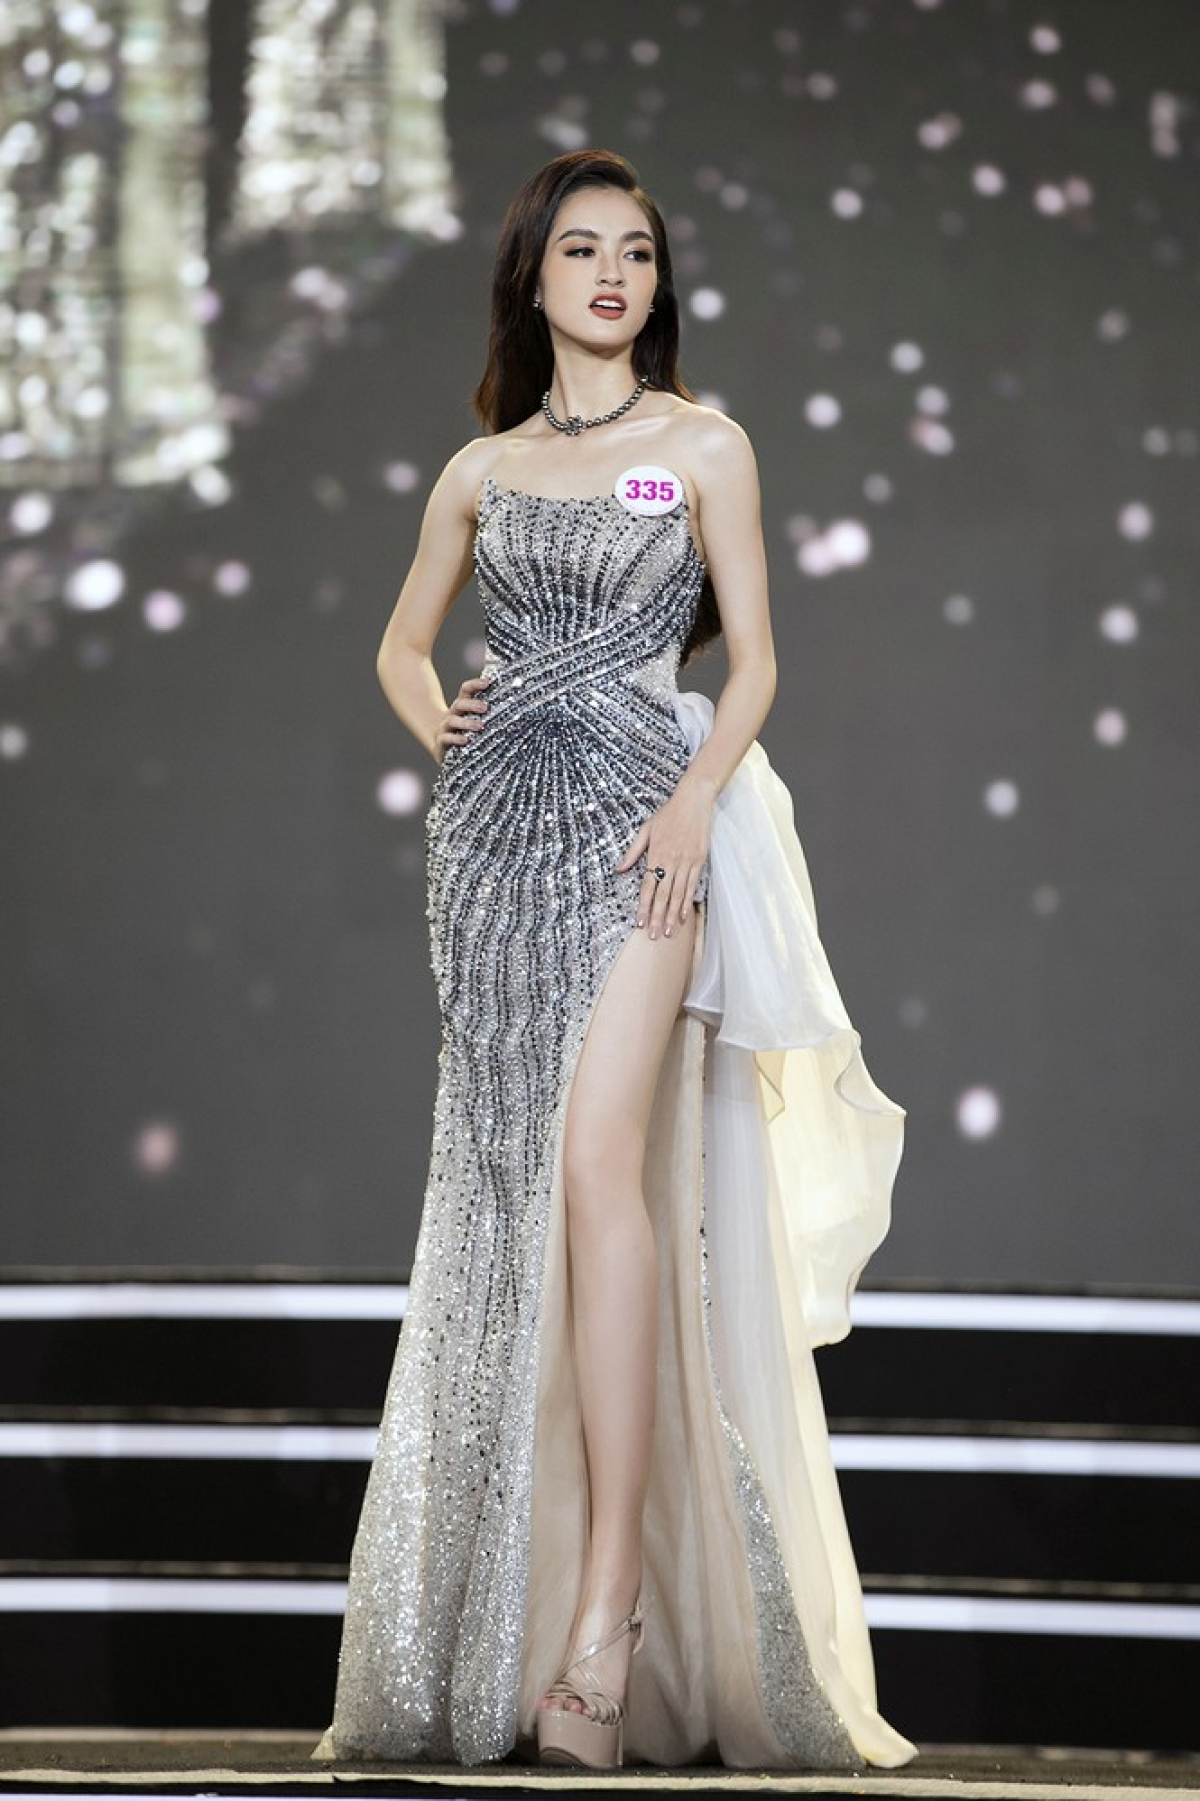 Nguyen Ha My is from Phu Tho province and is 1.64 metres tall and measures 75-61–88.